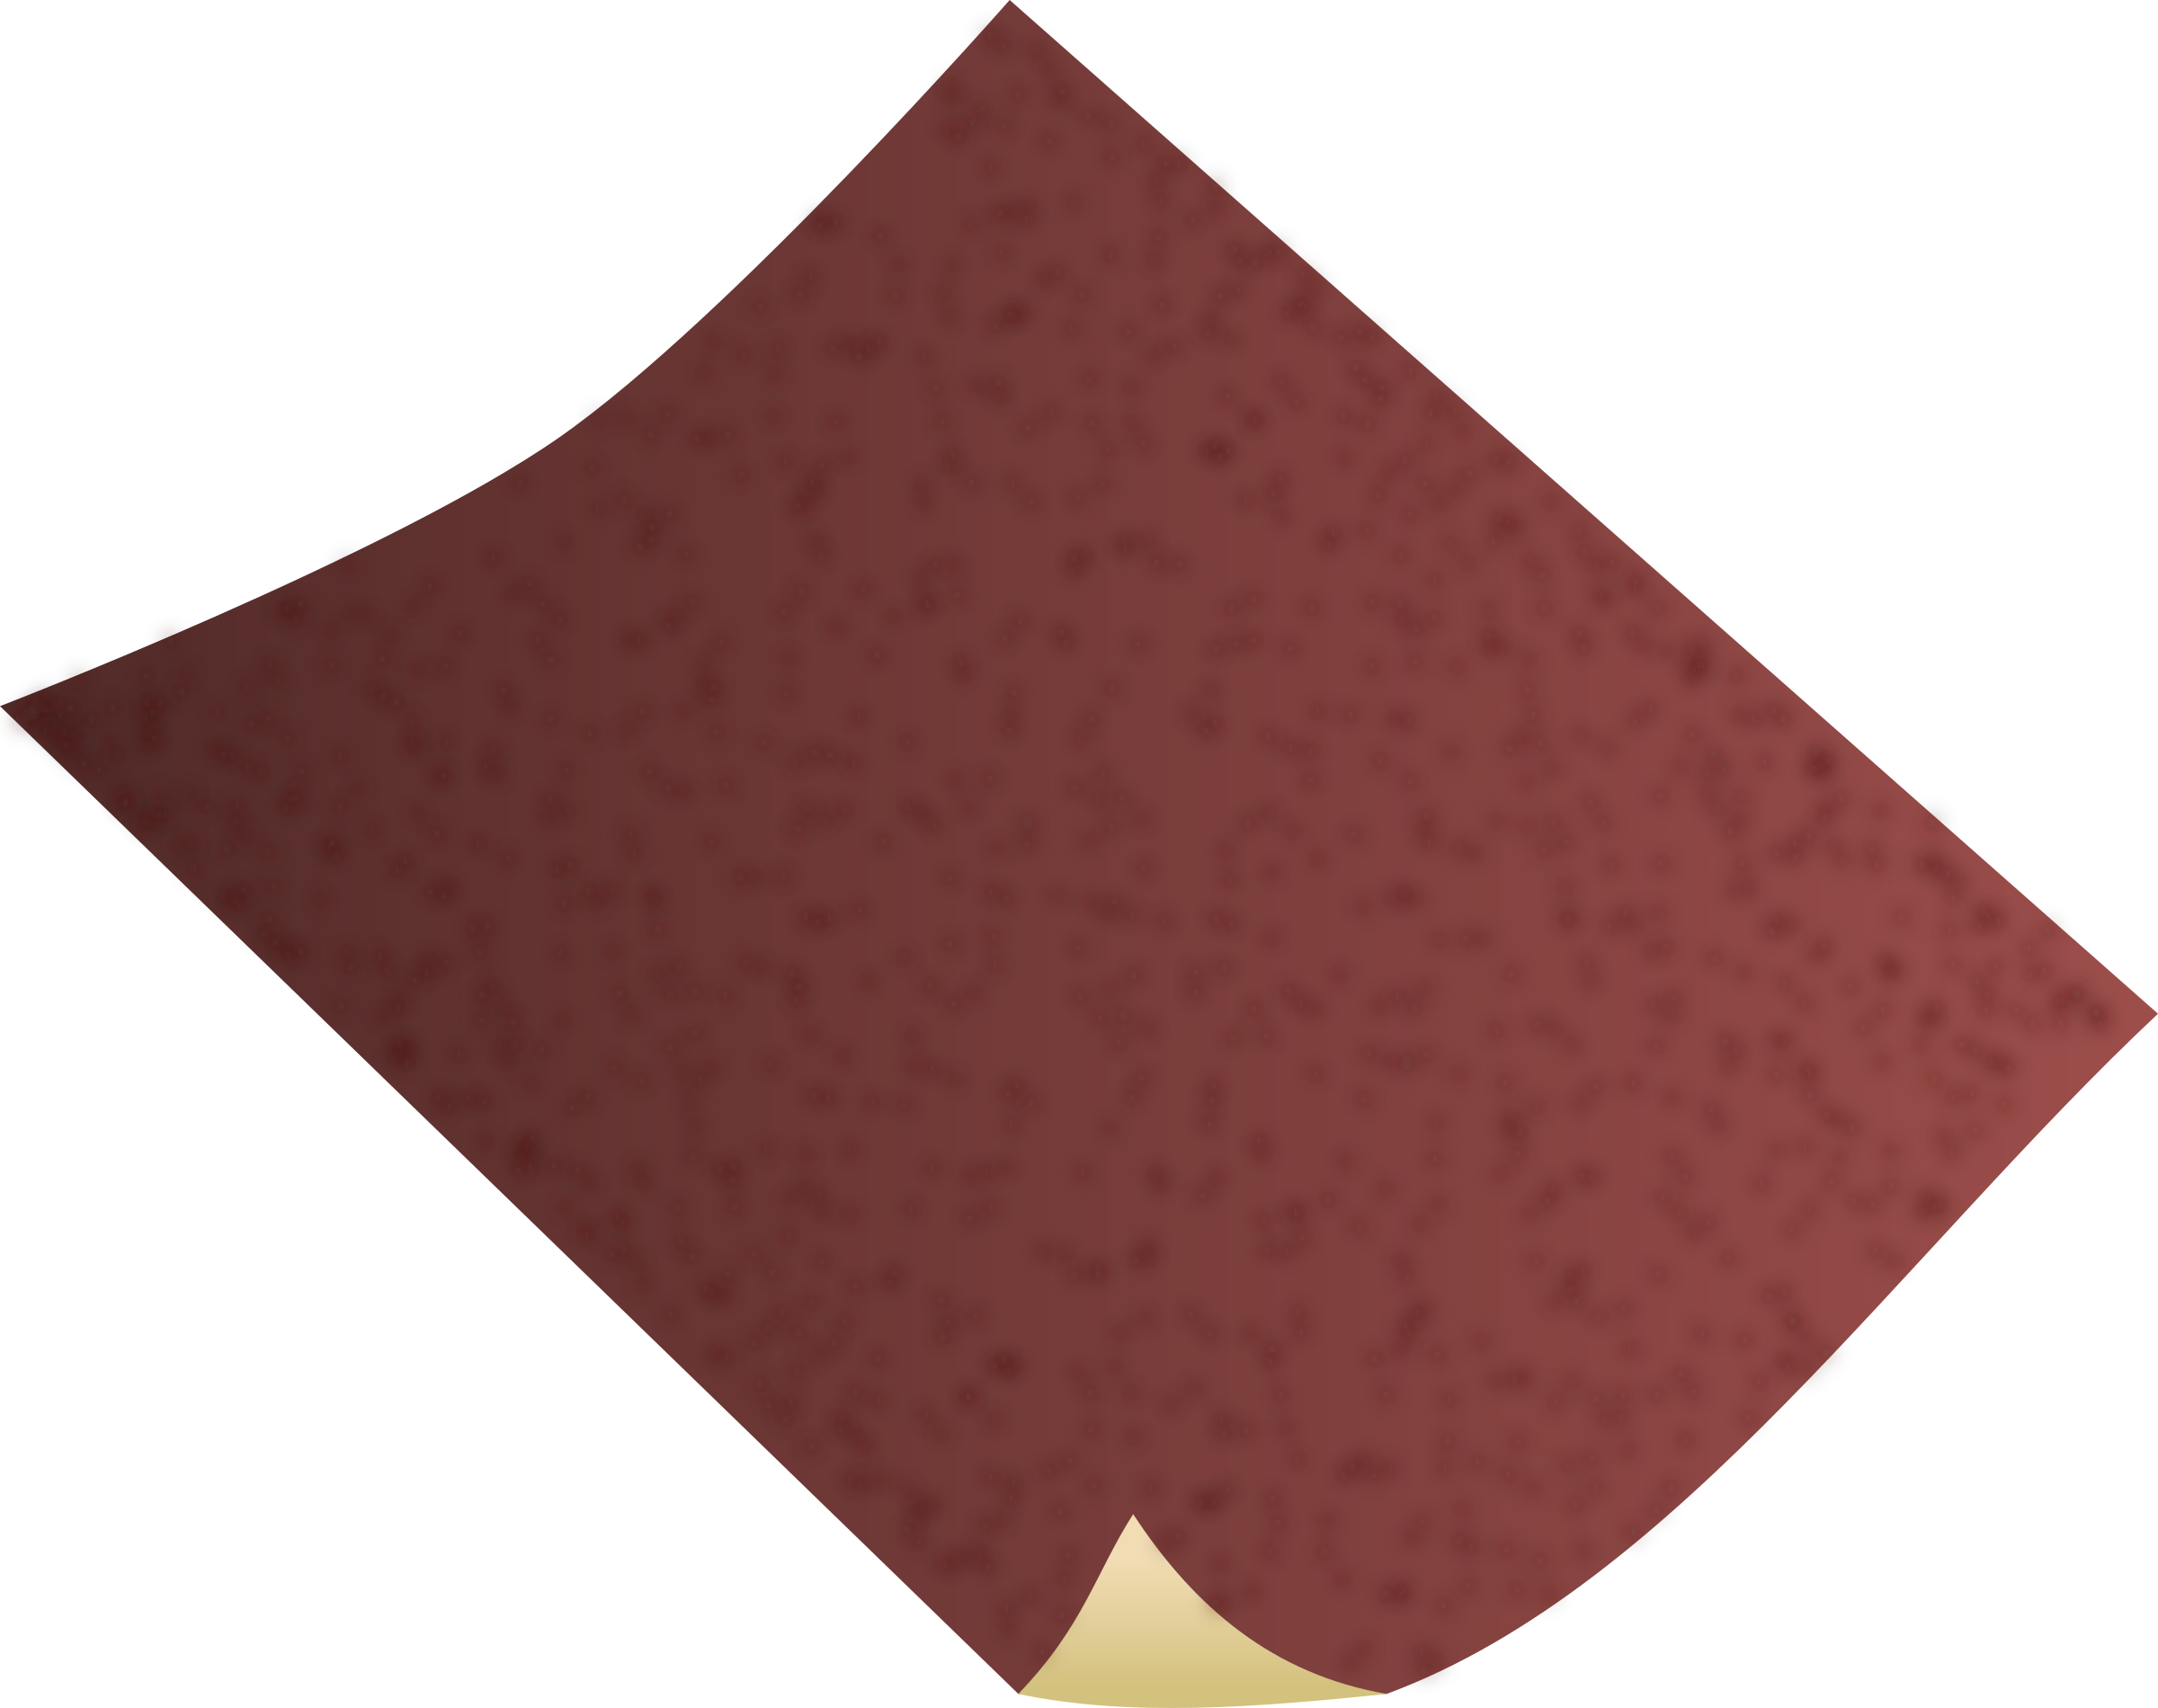 clipart sandpaper wmf clipart library wmf clipart free download